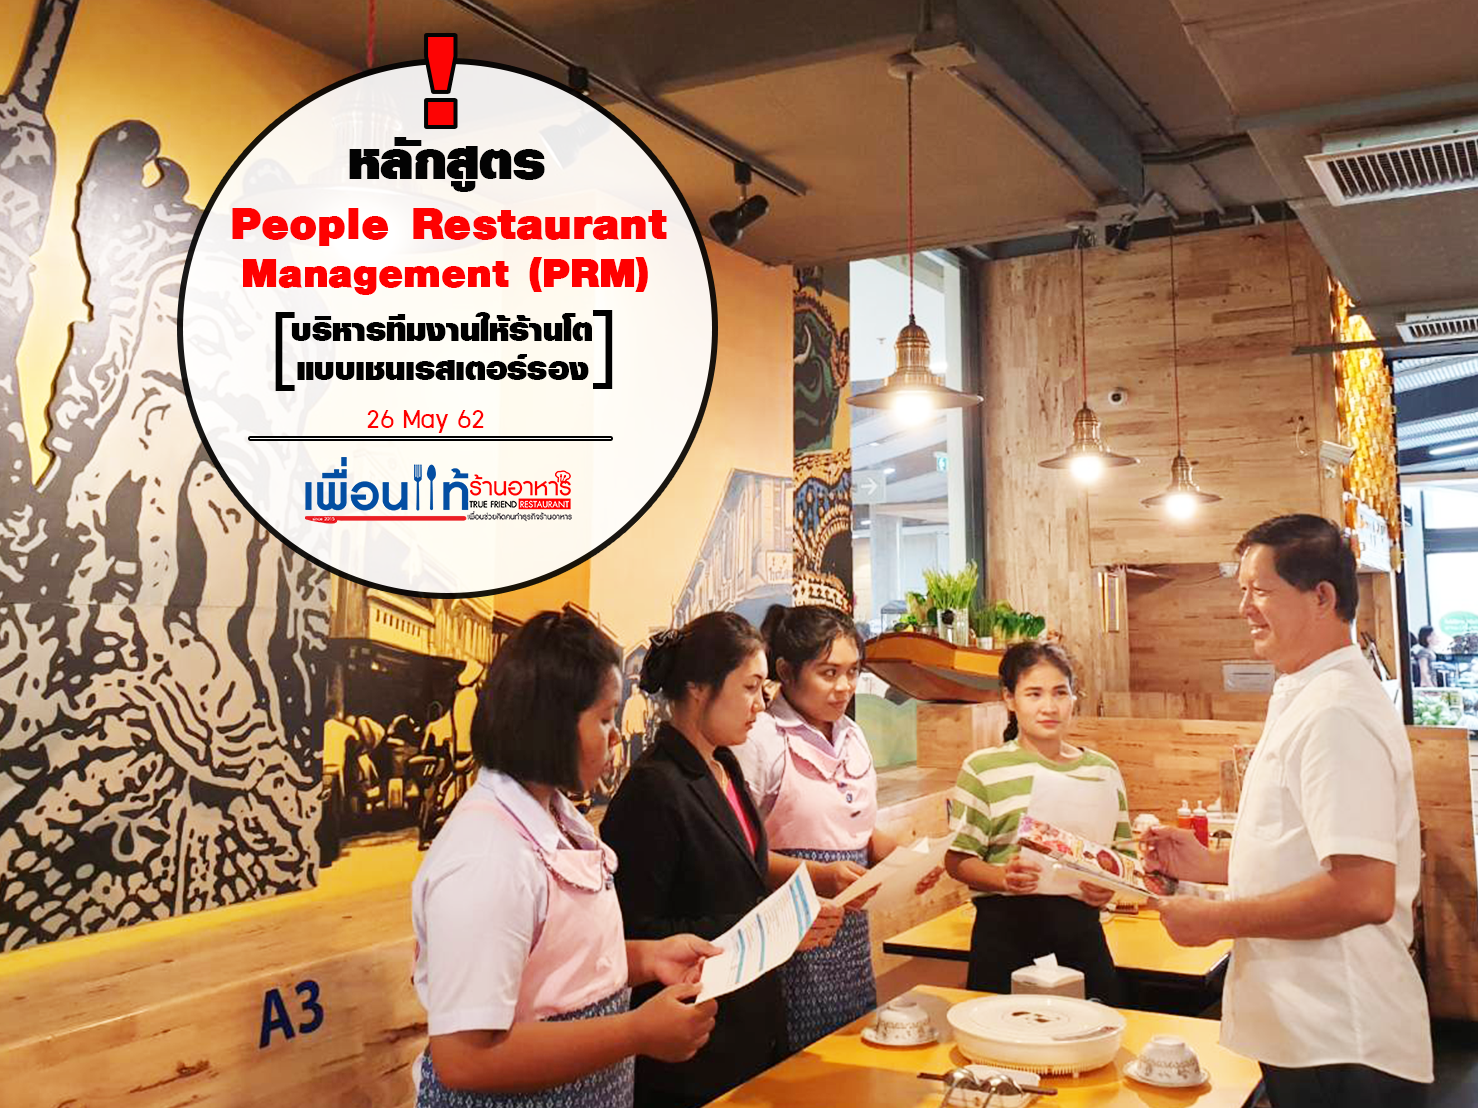 People Restaurant Management (PRM)